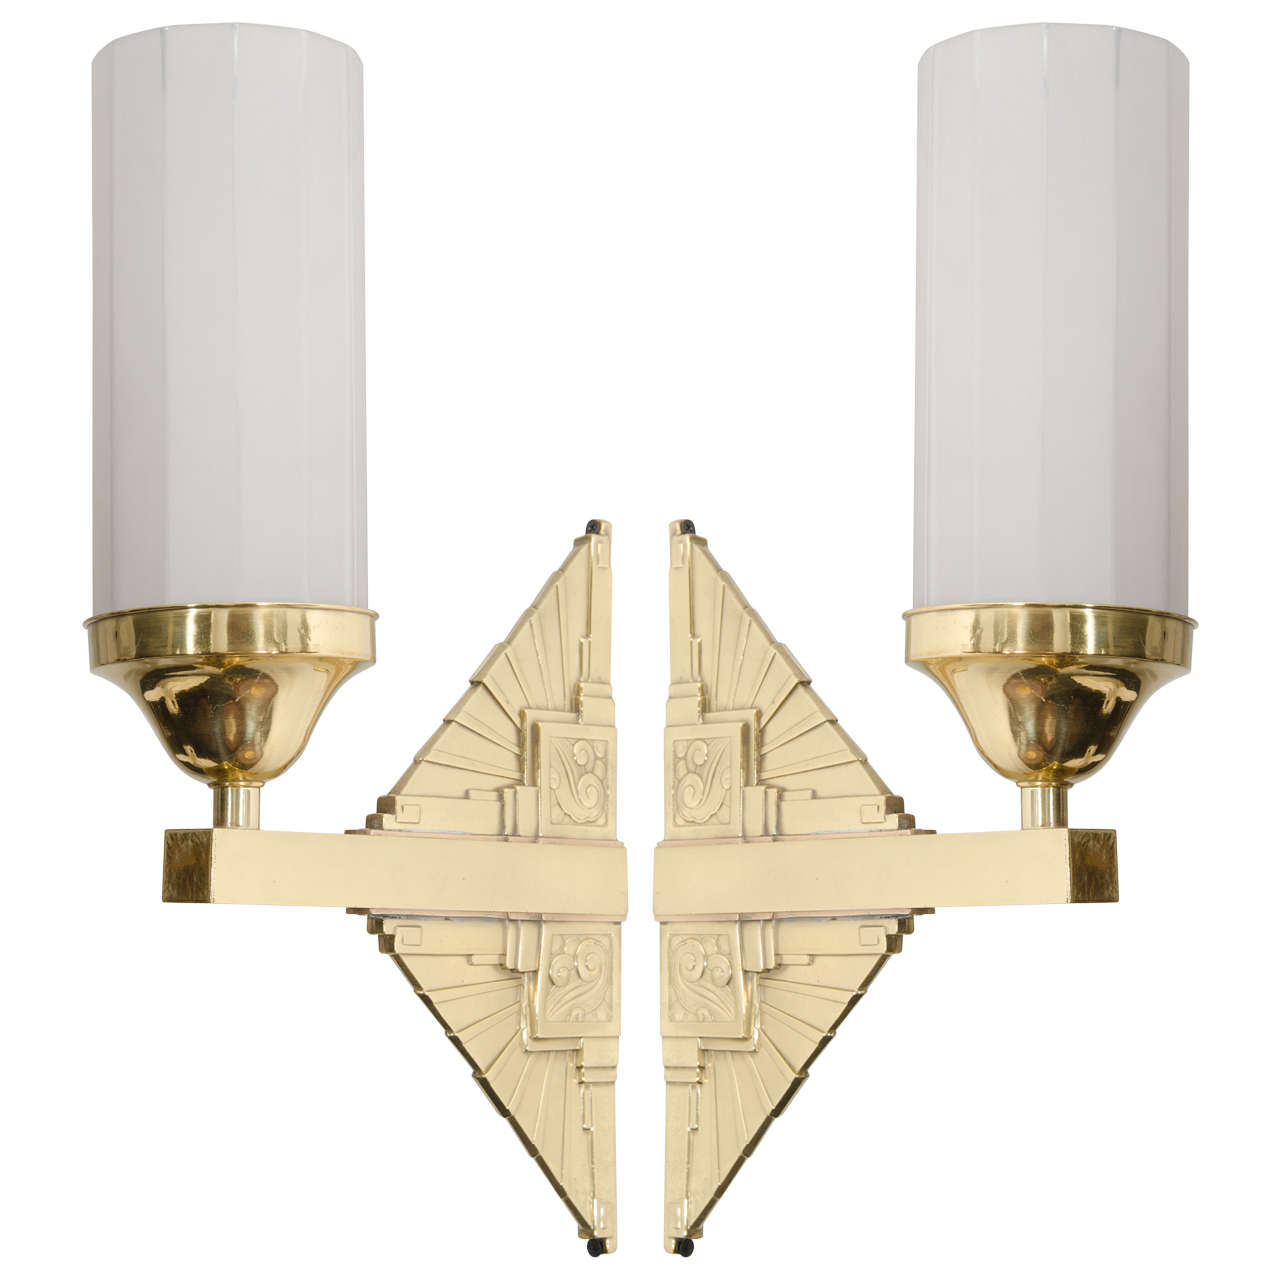 Art Deco Brass Wall Sconces : Art Deco Pair of Brass Wall Sconces at 1stdibs